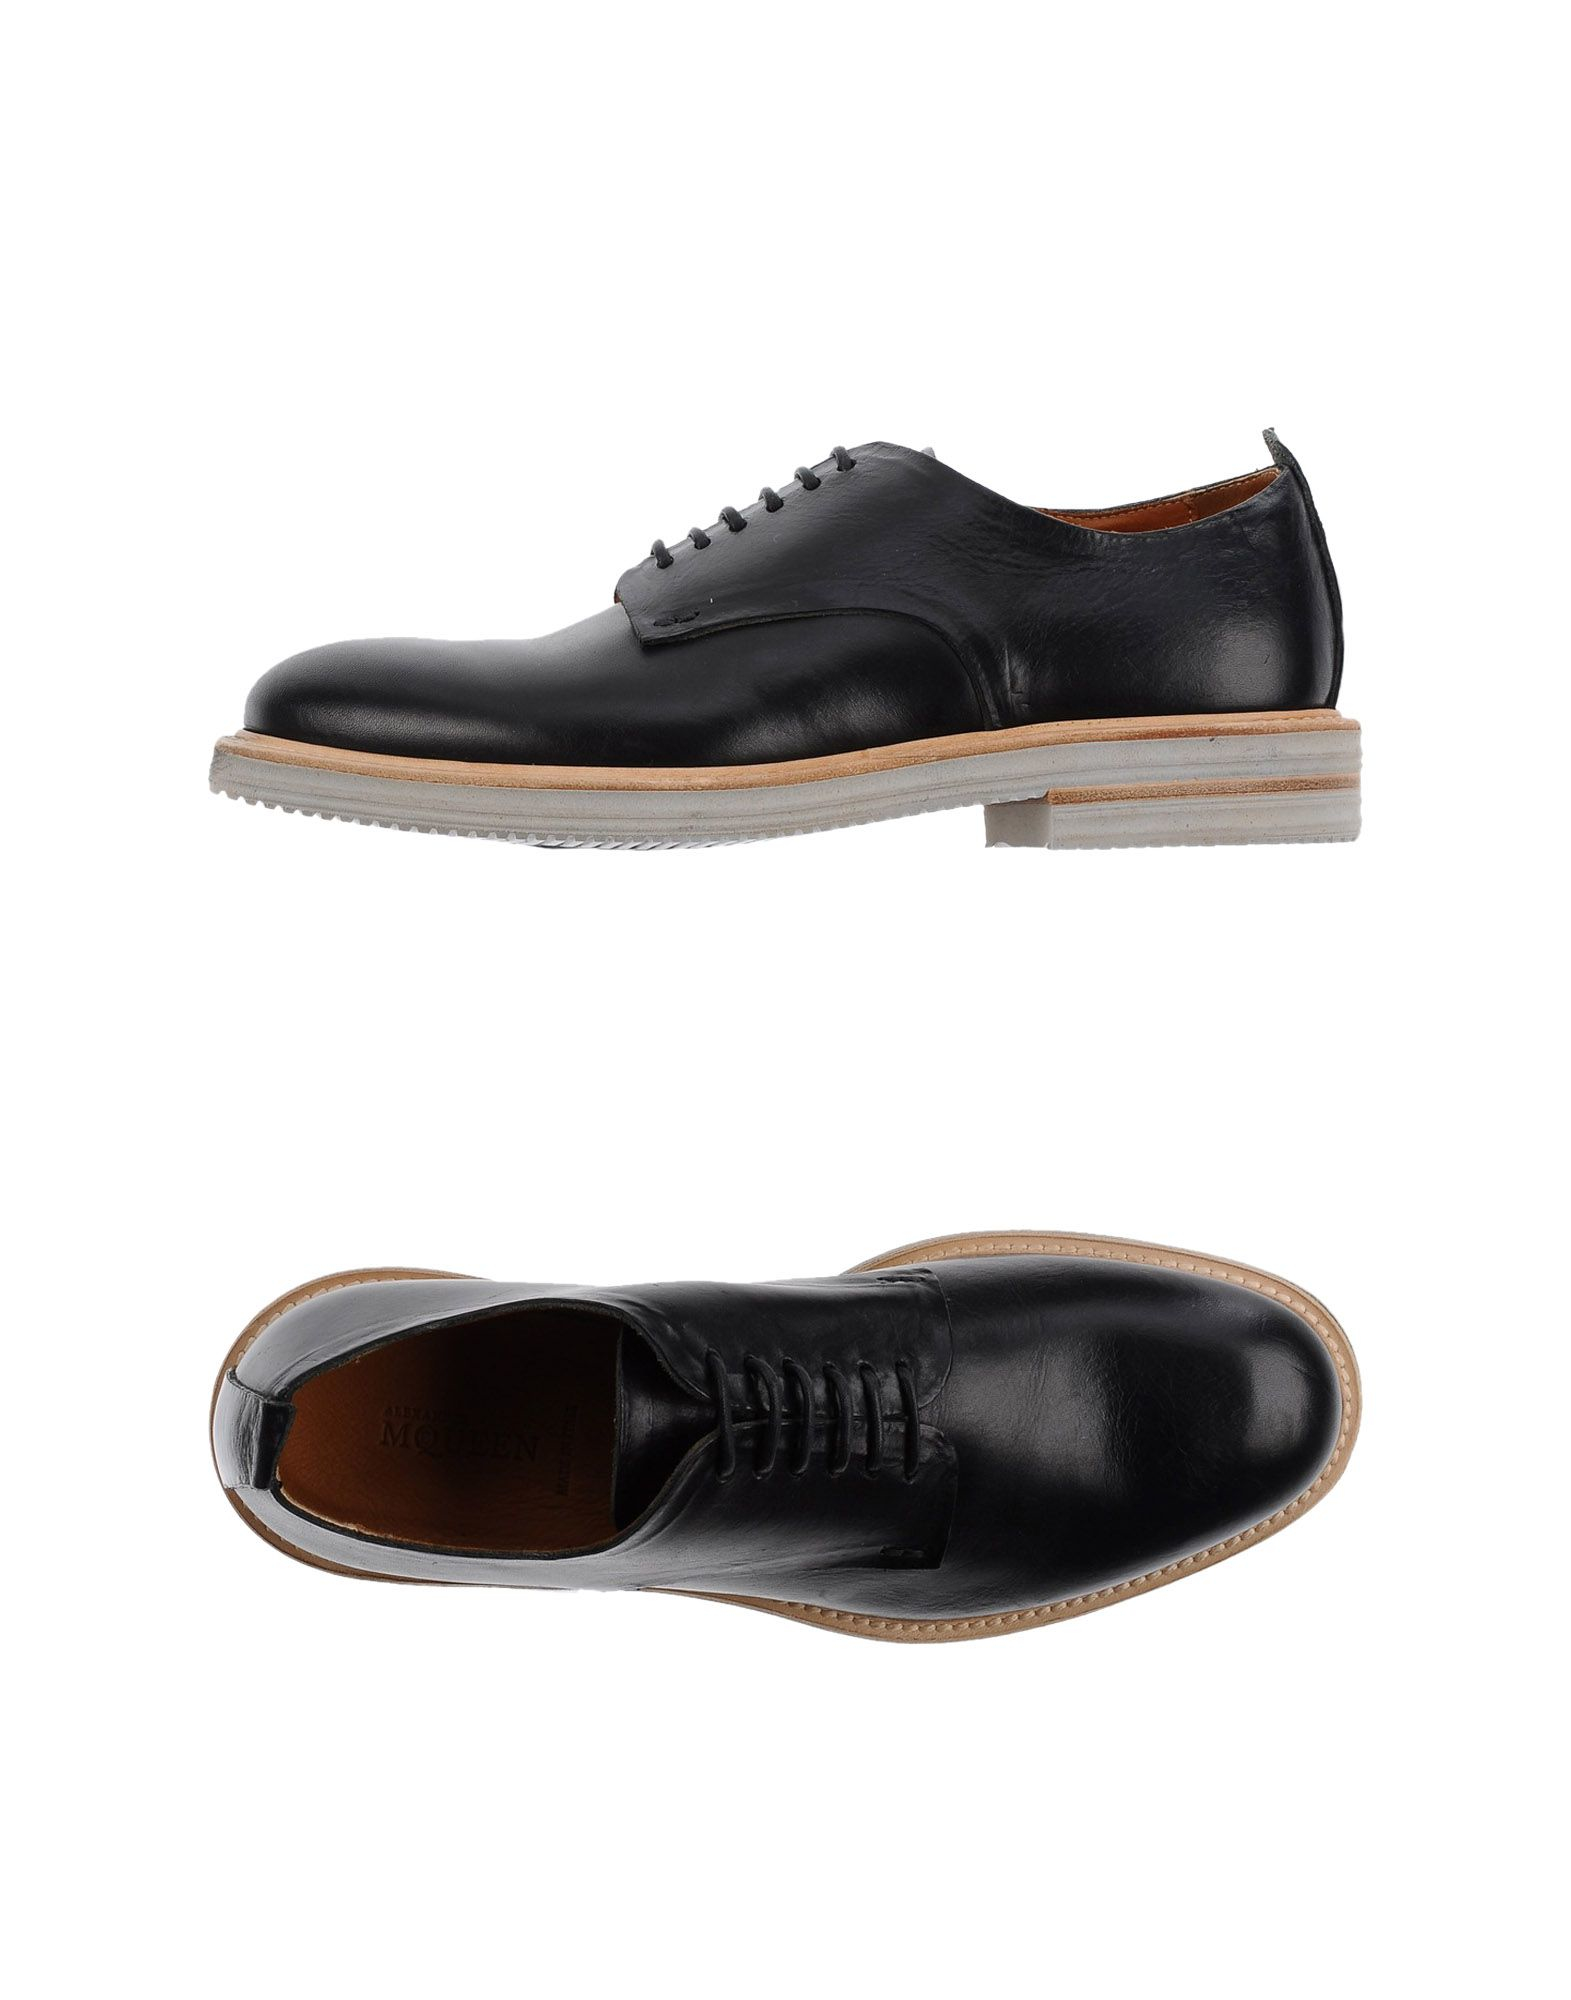 Lyst - Alexander Mcqueen Lace-up Shoes in Black for Men